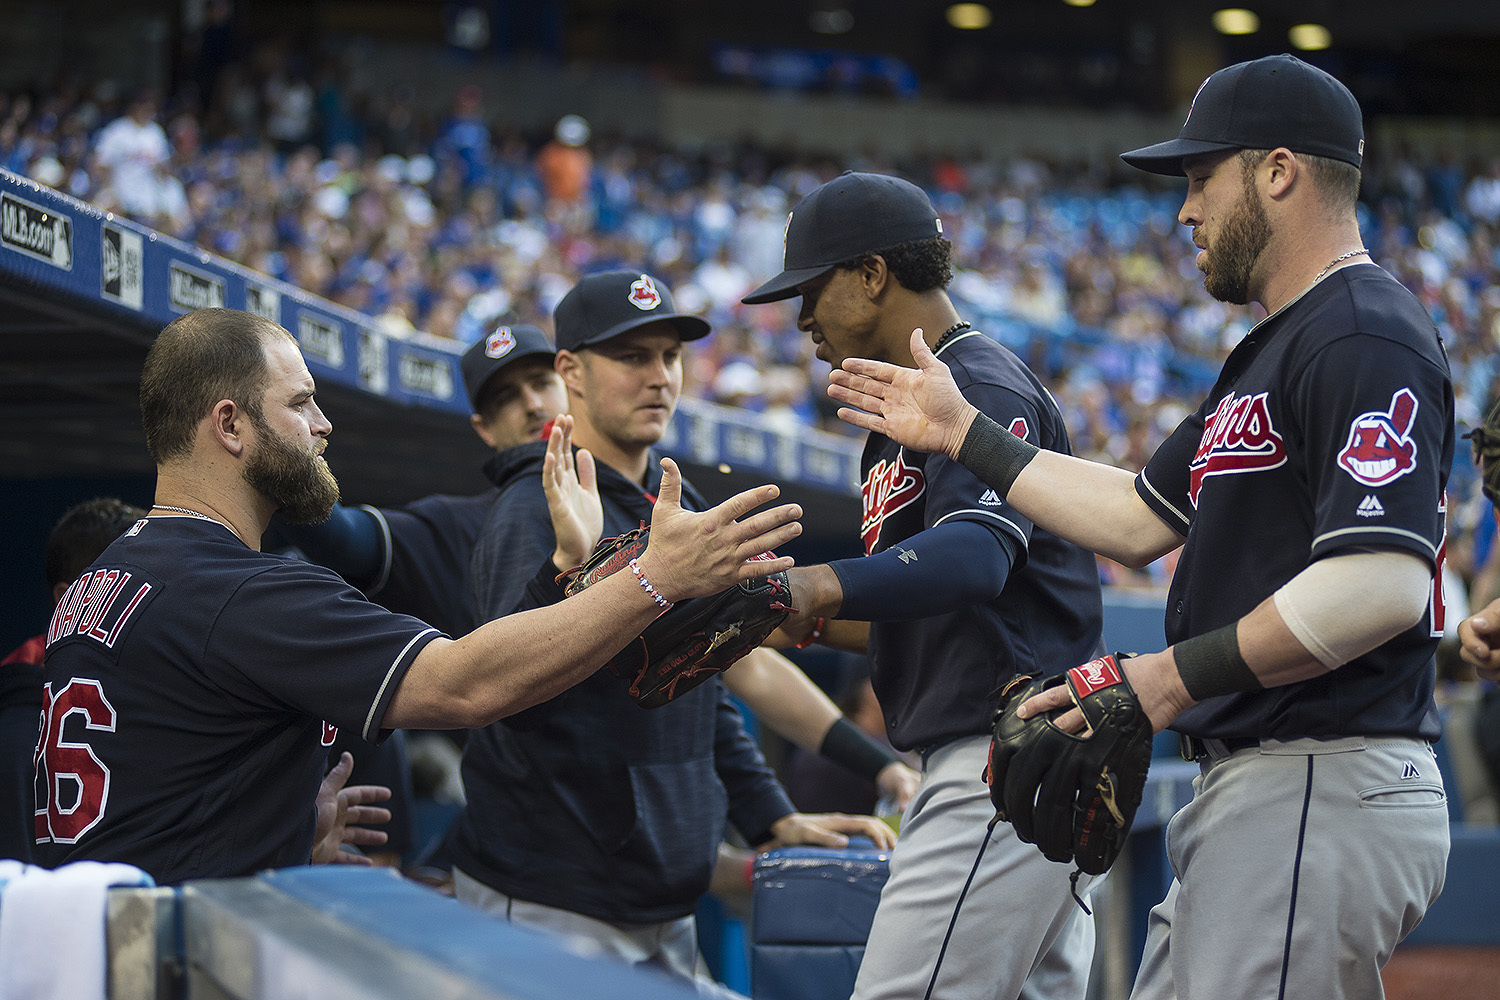 Cleveland Indians' Mike Napoli, left, greets teammates Francisco Lindor, second from right, and Jason Kipnis, right, at the end of first inning against the Toronto Blue Jays, in Toronto, Thursday, June 30, 2016.